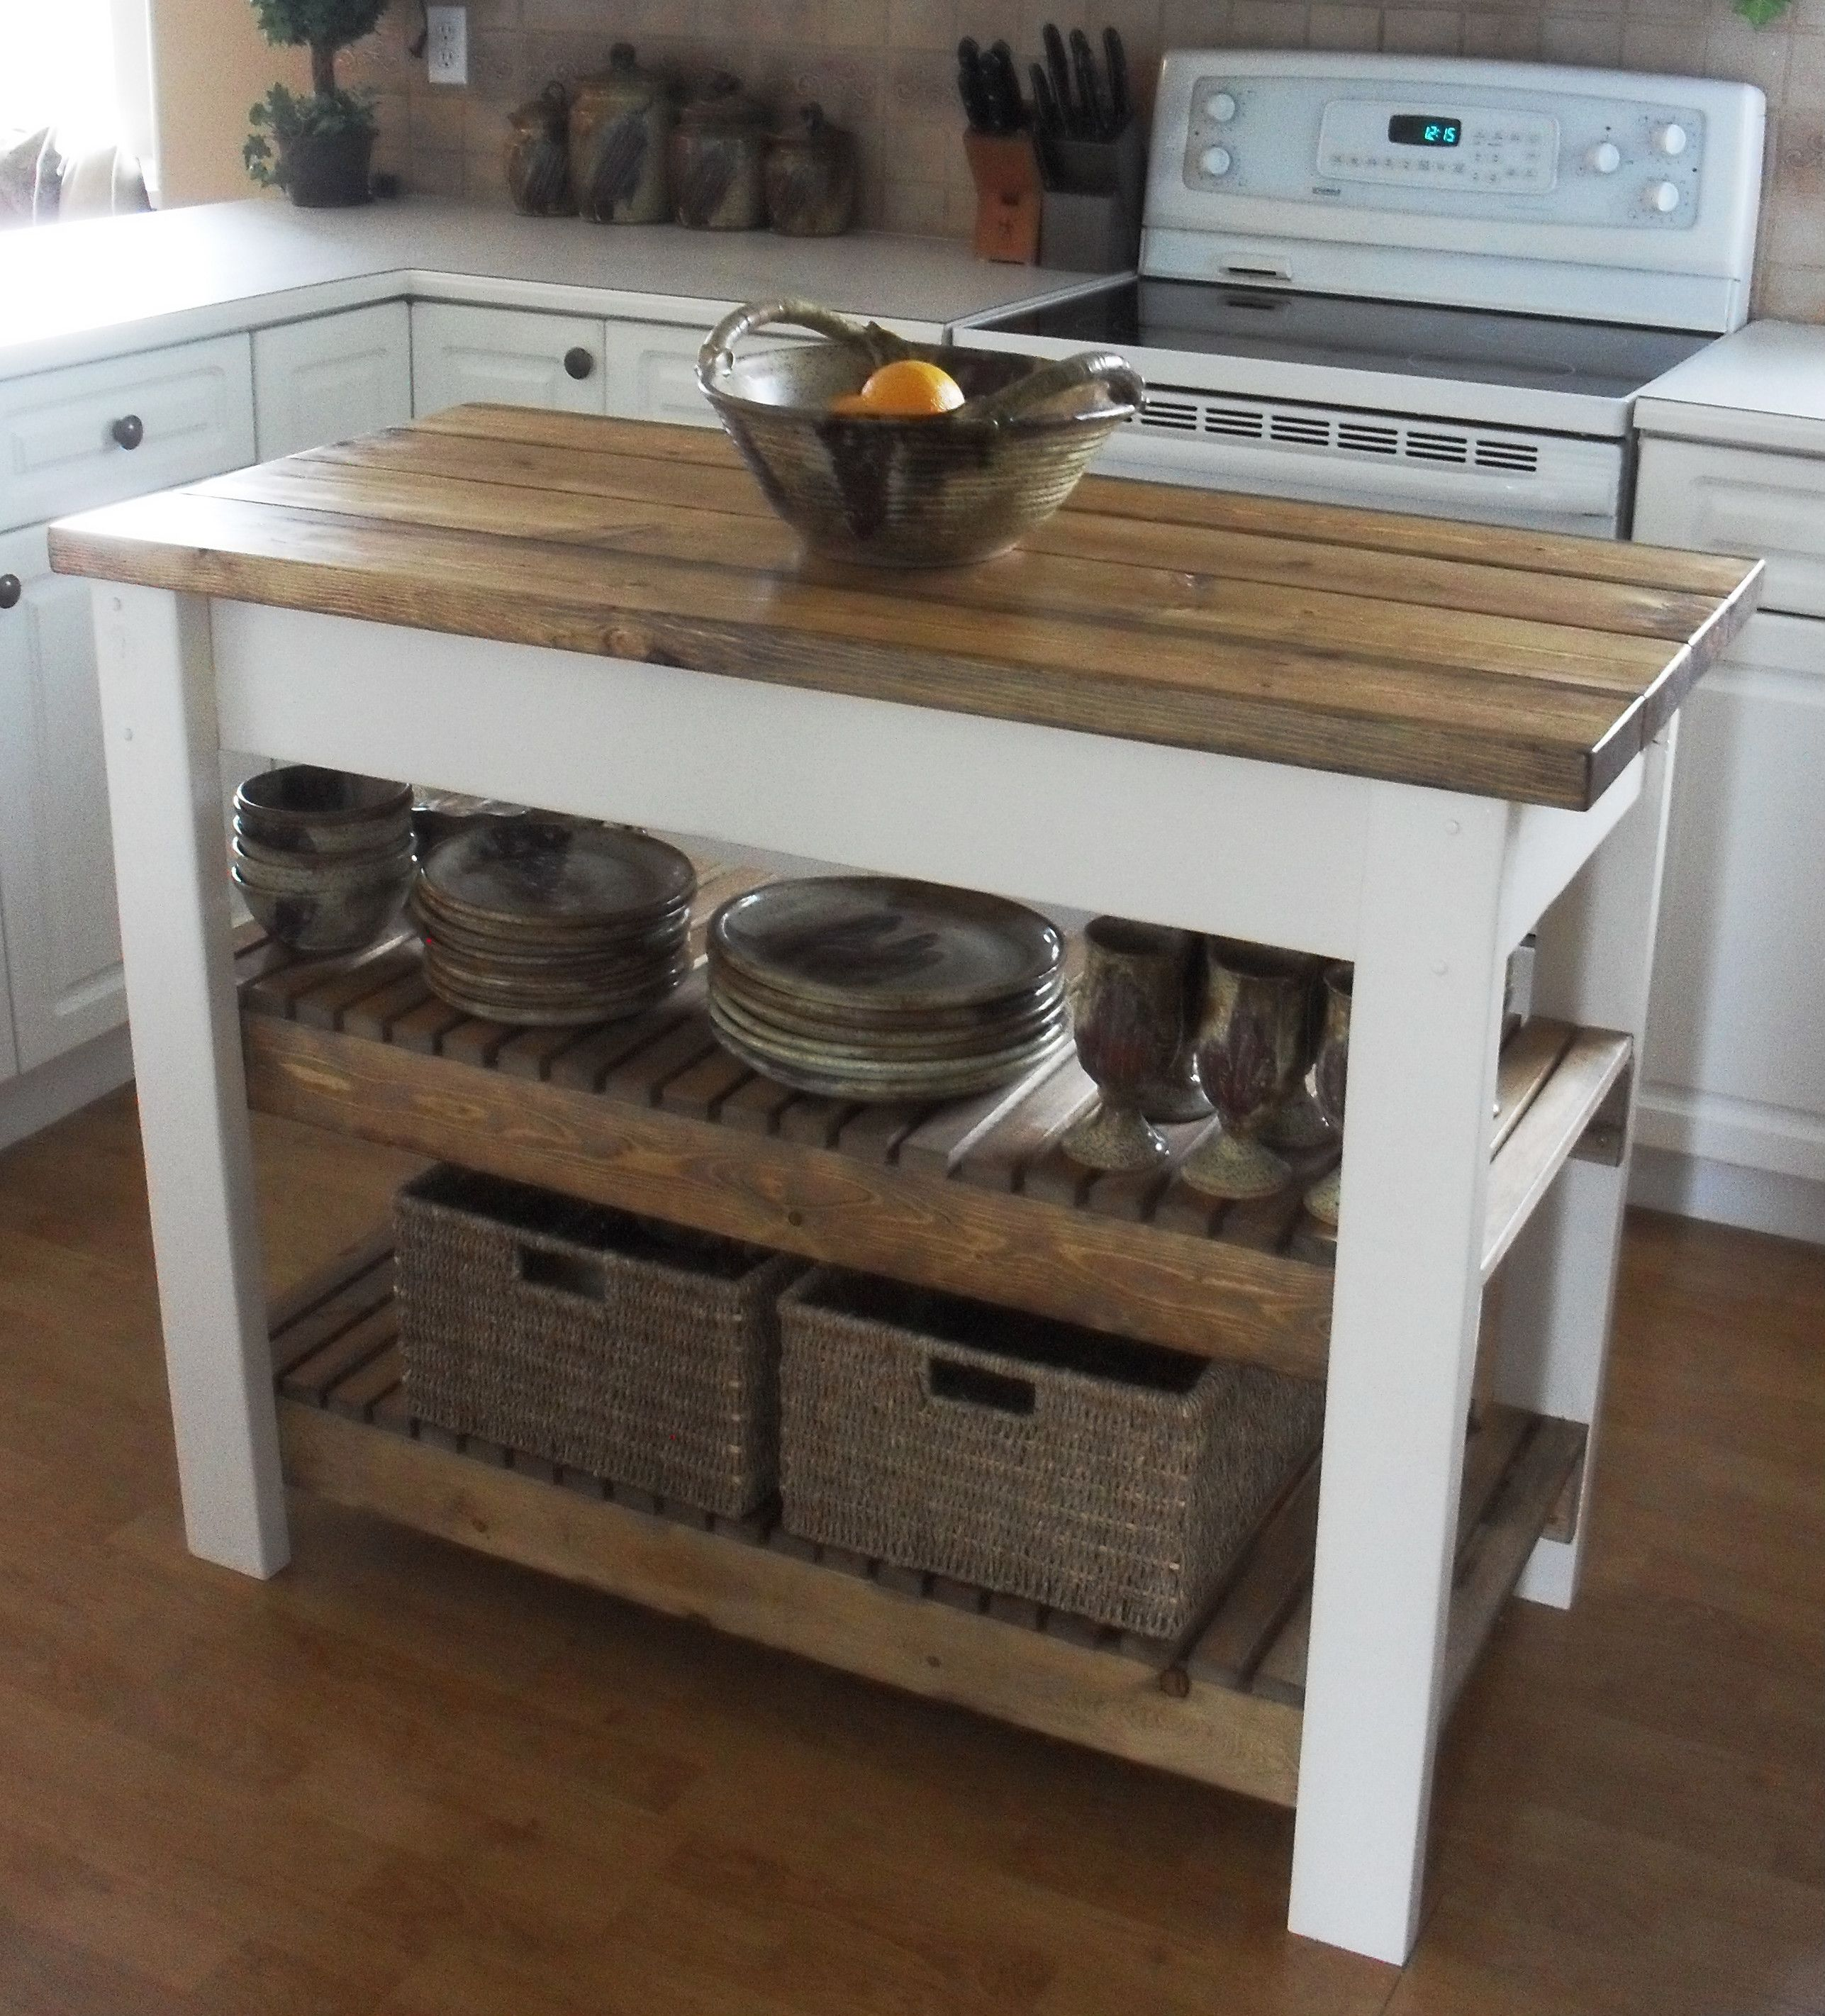 Uncategorized Home Goods Kitchen Island 15 wonderful diy ideas to upgrade the kitchen10 kitchen white islandkitchen